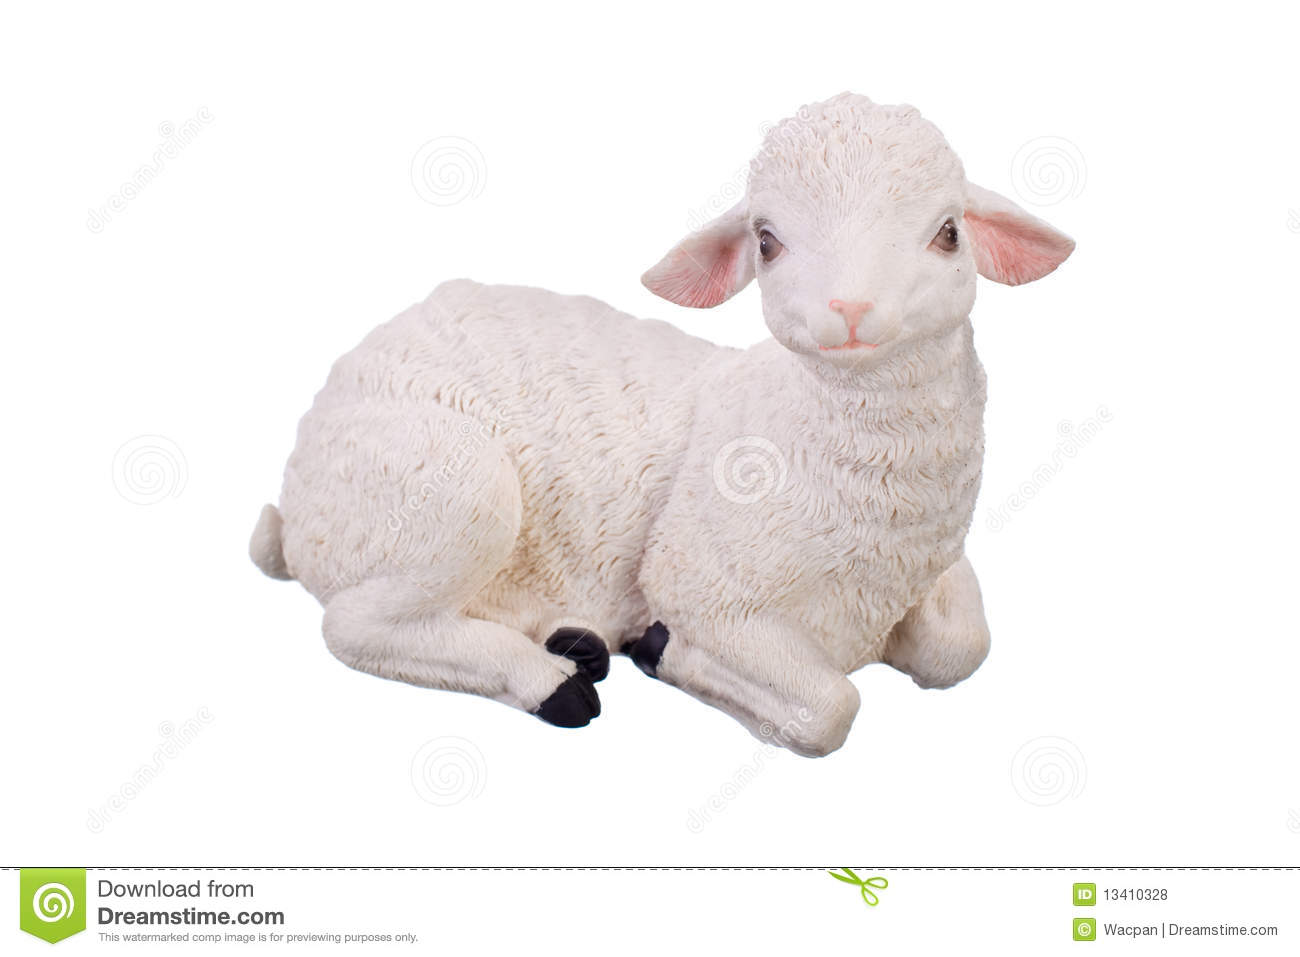 Toy Sheep Royalty Free Stock Photos - Image: 13410328